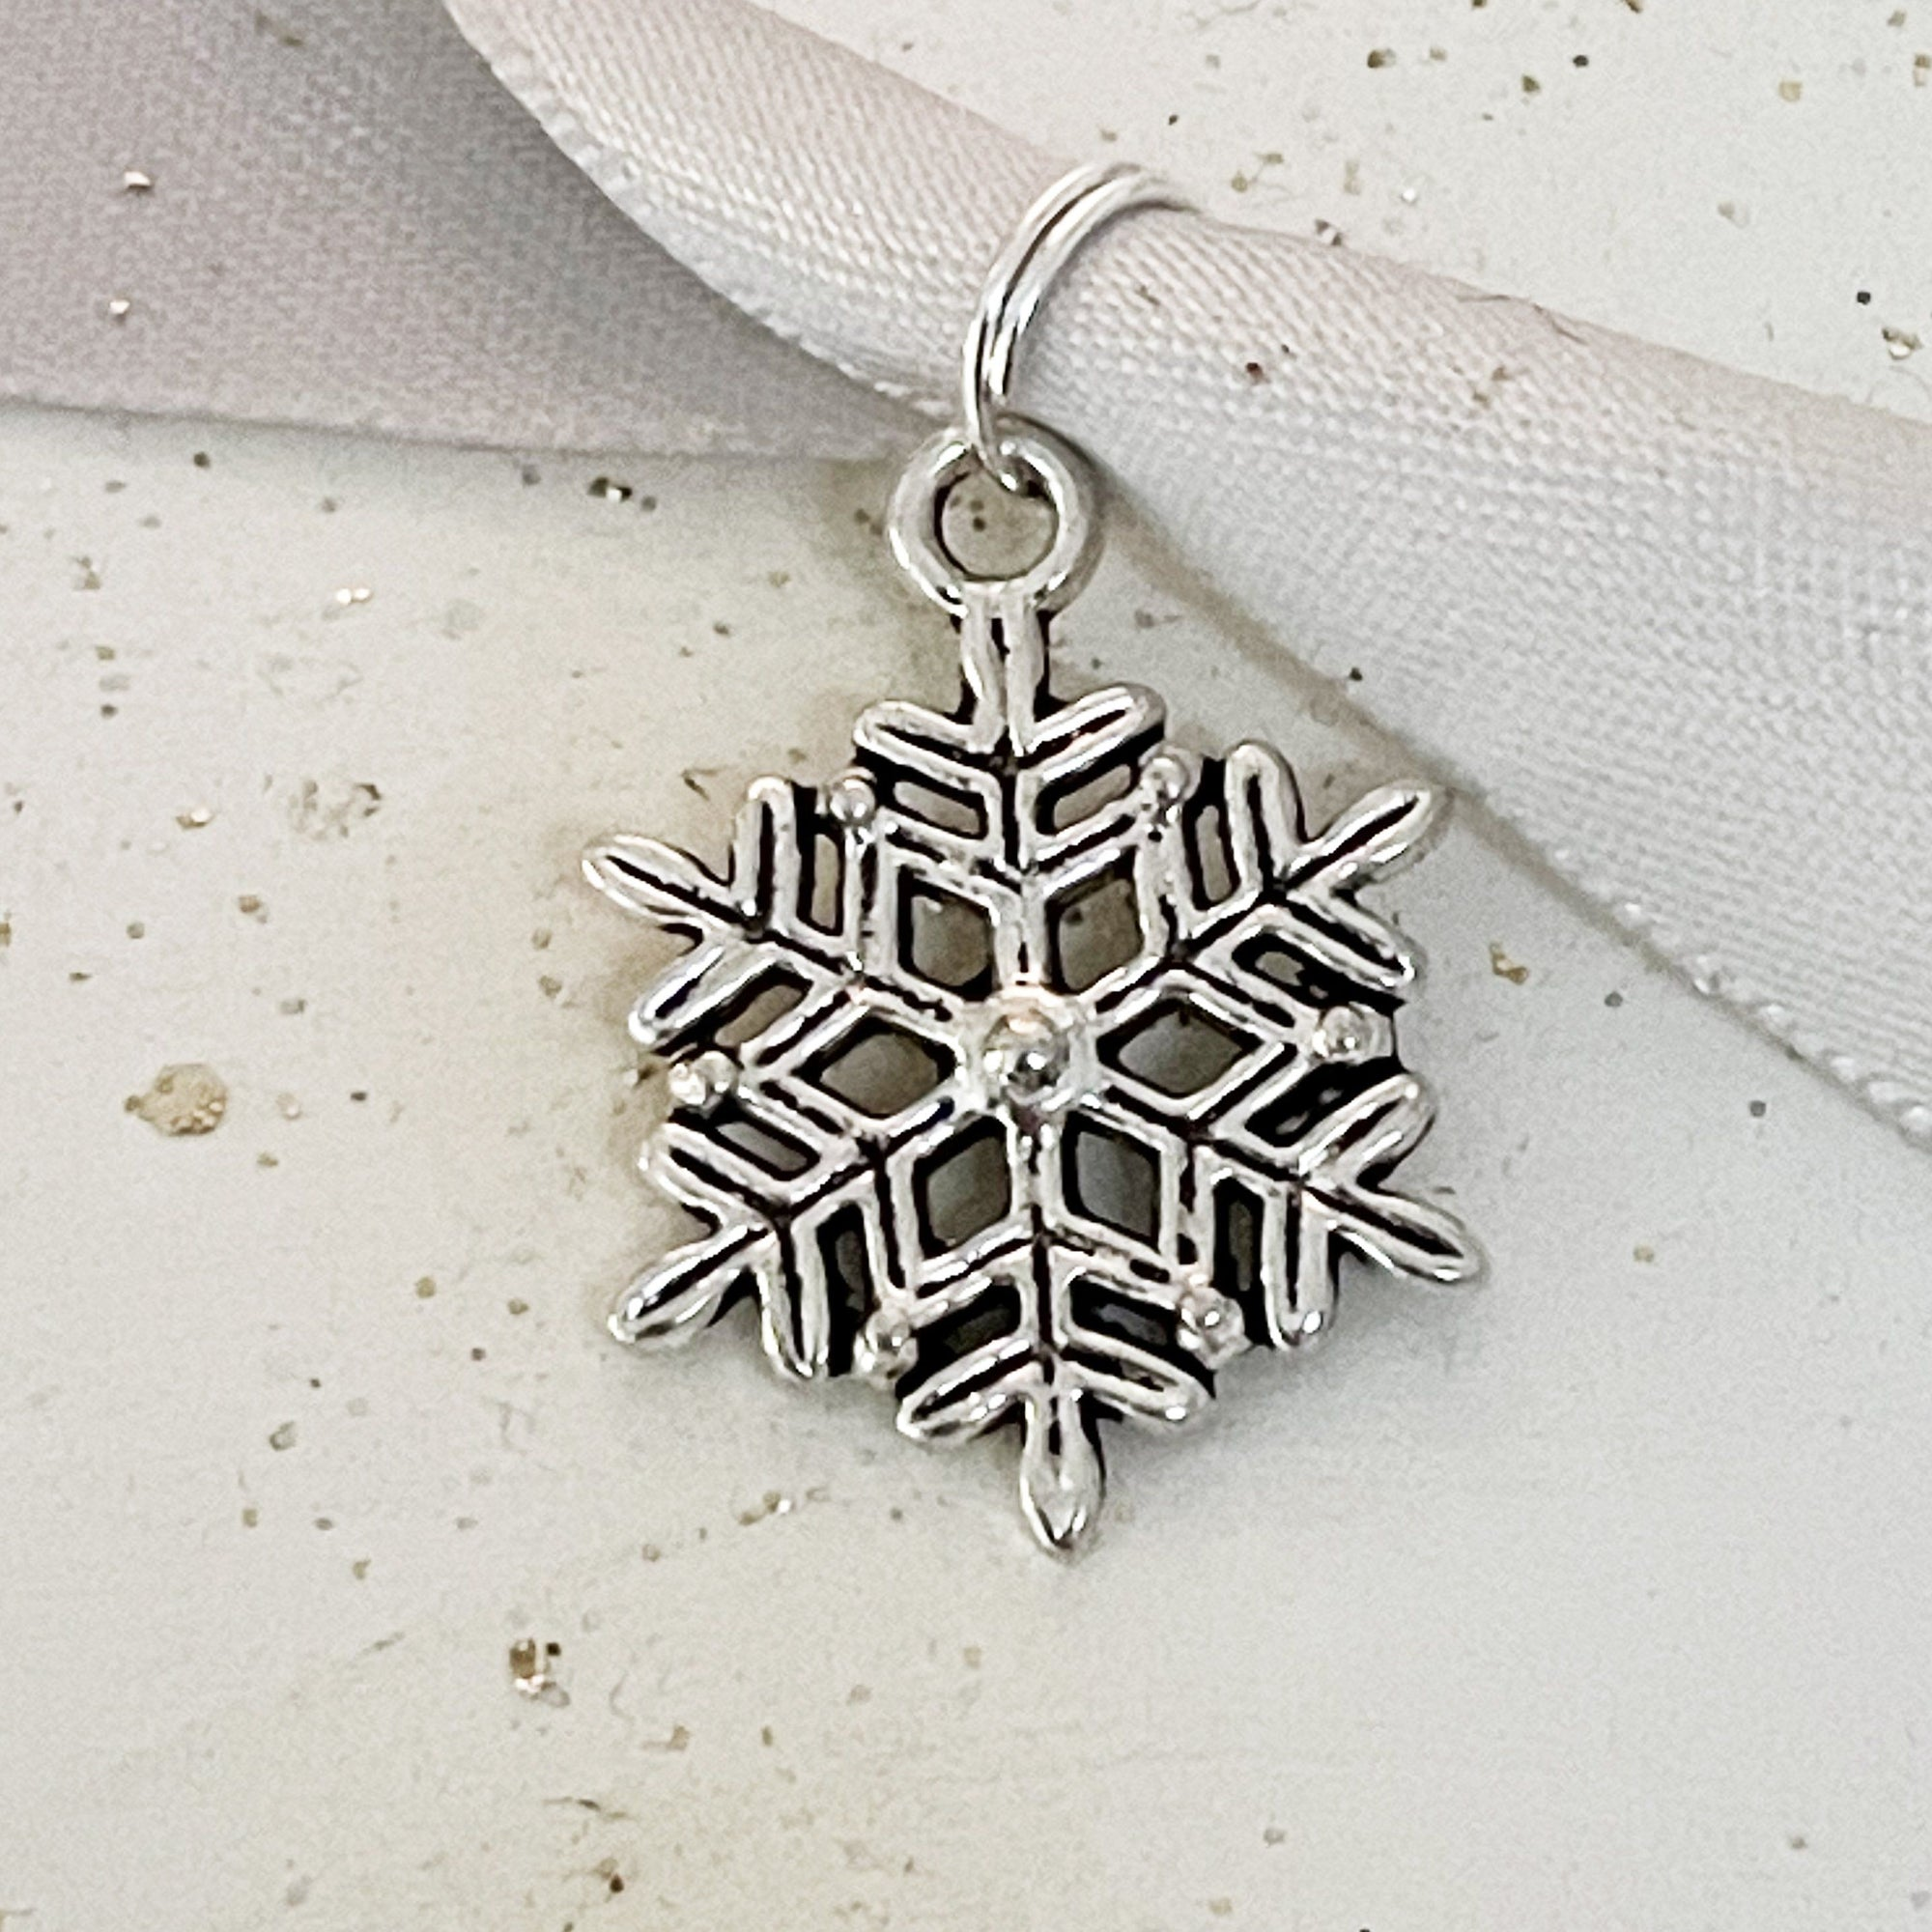 Opening Christmas Trinket Bauble with snowflake